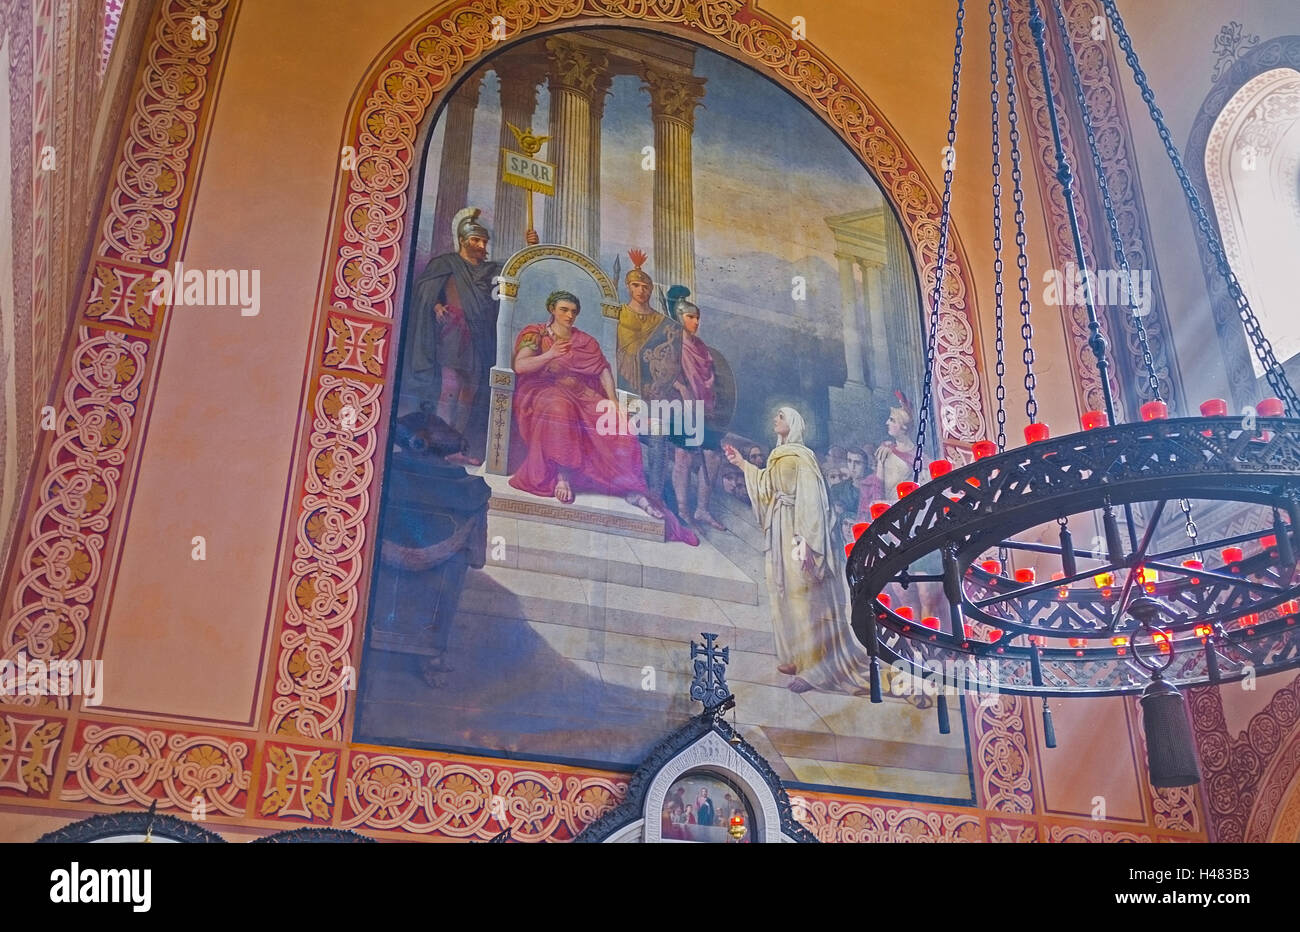 The icon in Russian Orthodox Church of Mary Magdalene showing her in front of Pontius Pilate - Stock Image